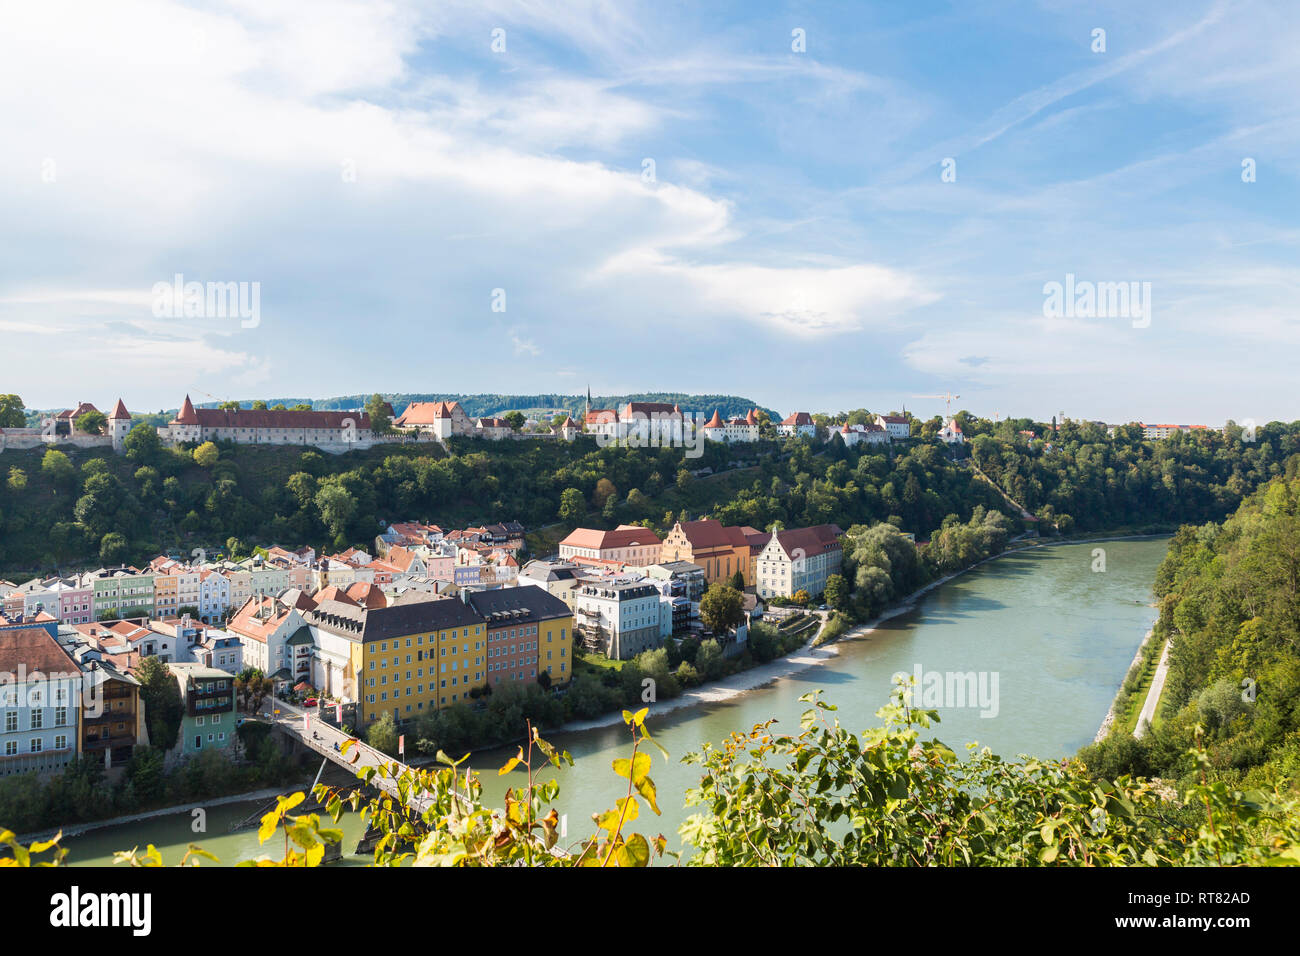 Germany, Bavaria, Burghausen, Old town with Burghausen Castle, Salzach river - Stock Image